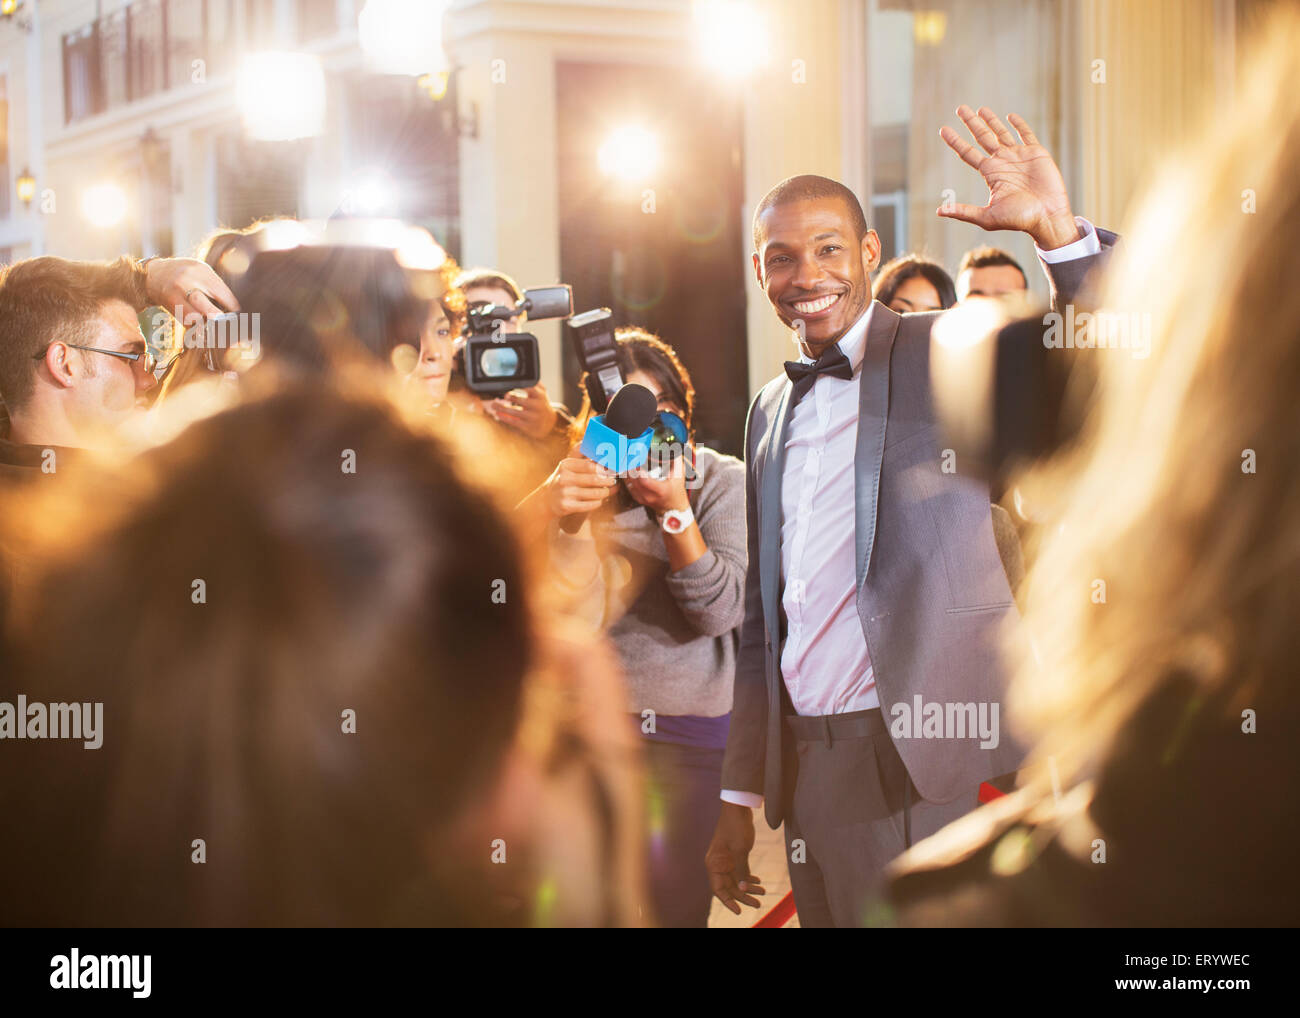 Celebrity waving for paparazzi with cameras at event - Stock Image